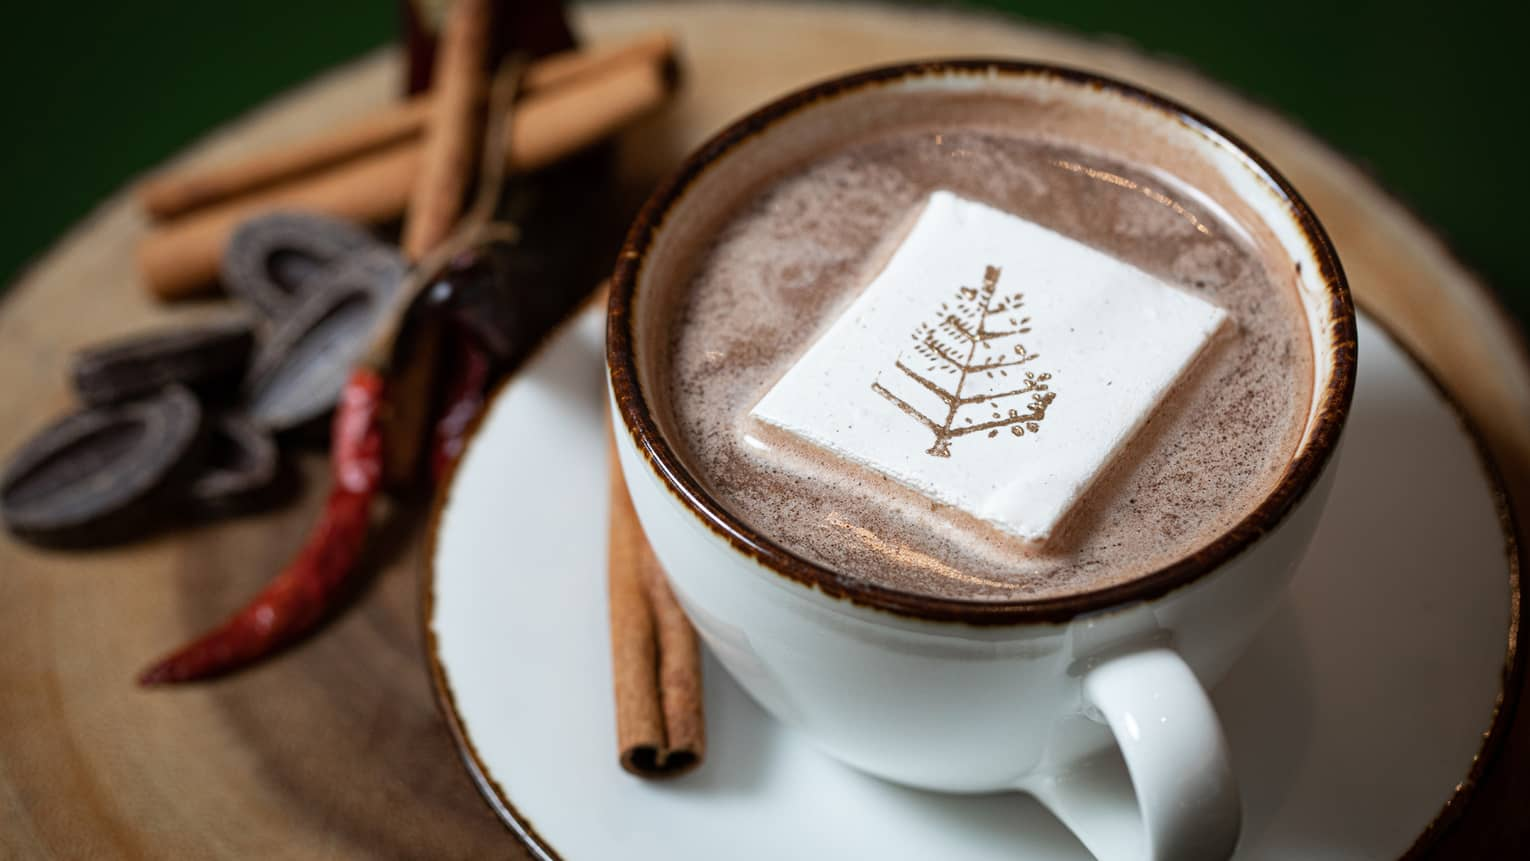 A closeup of a white cup of hot chocolate, a marshmallow with the four seasons logo in the middle of it, cinnamon sticks, dark chocolate chunks and a red chili garnished on the matching white saucer